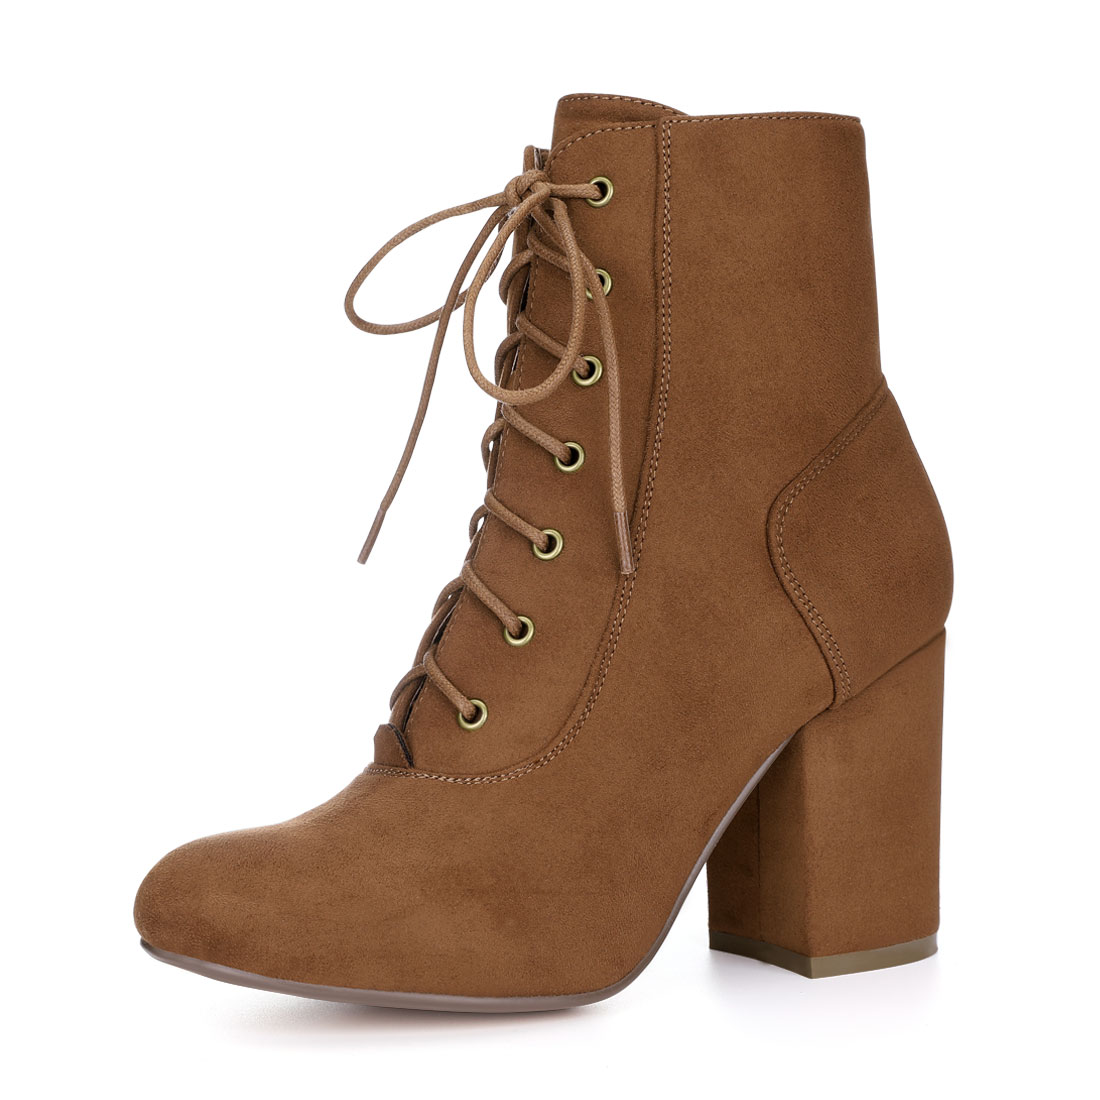 Allegra K Women Round Toe Chunky High Heel Lace Up Booties Brown US 6